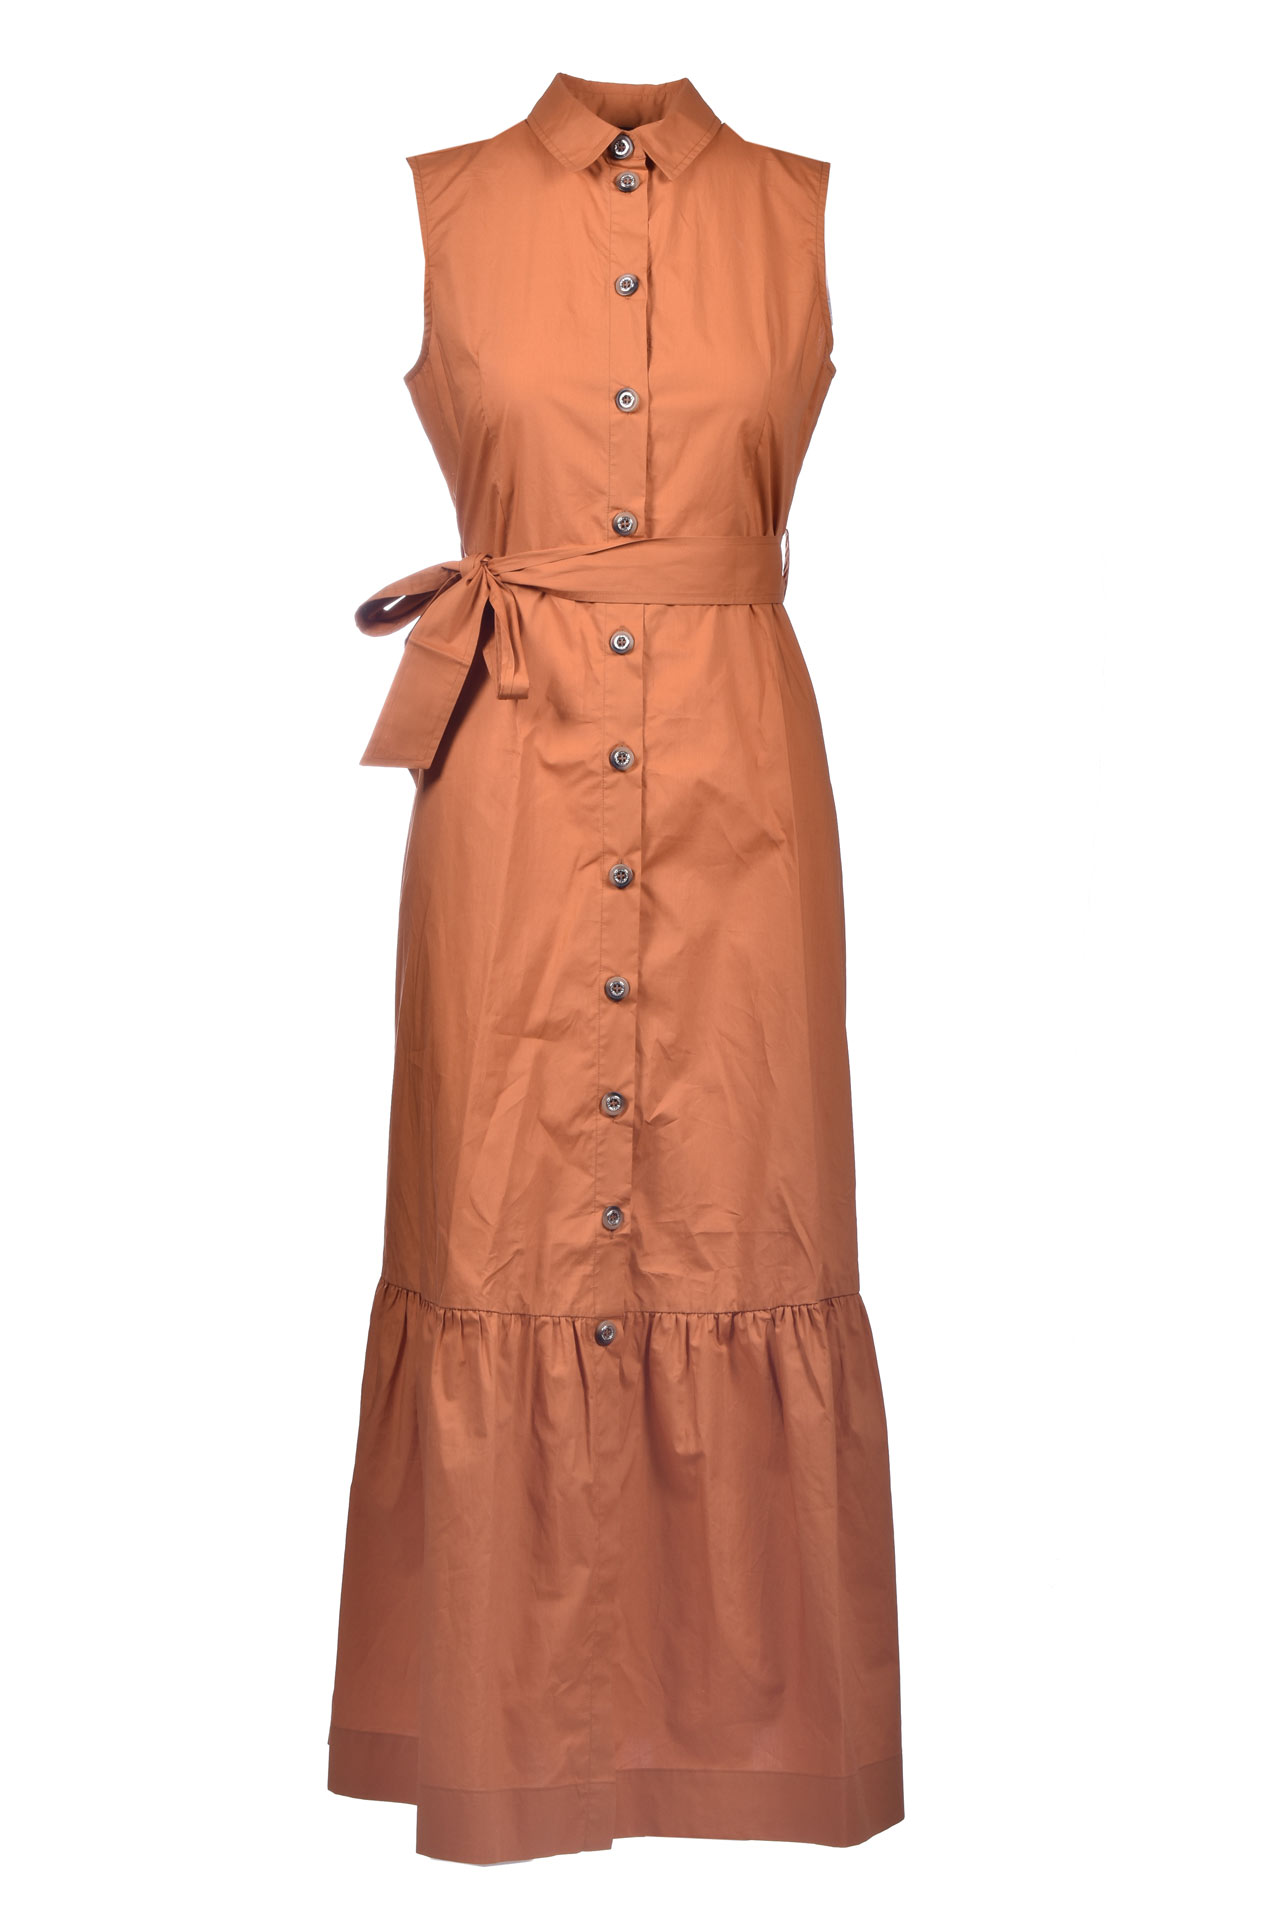 Ginger-colored cotton poplin shirt dress PINKO |  | 1G1669-Y6VXL40